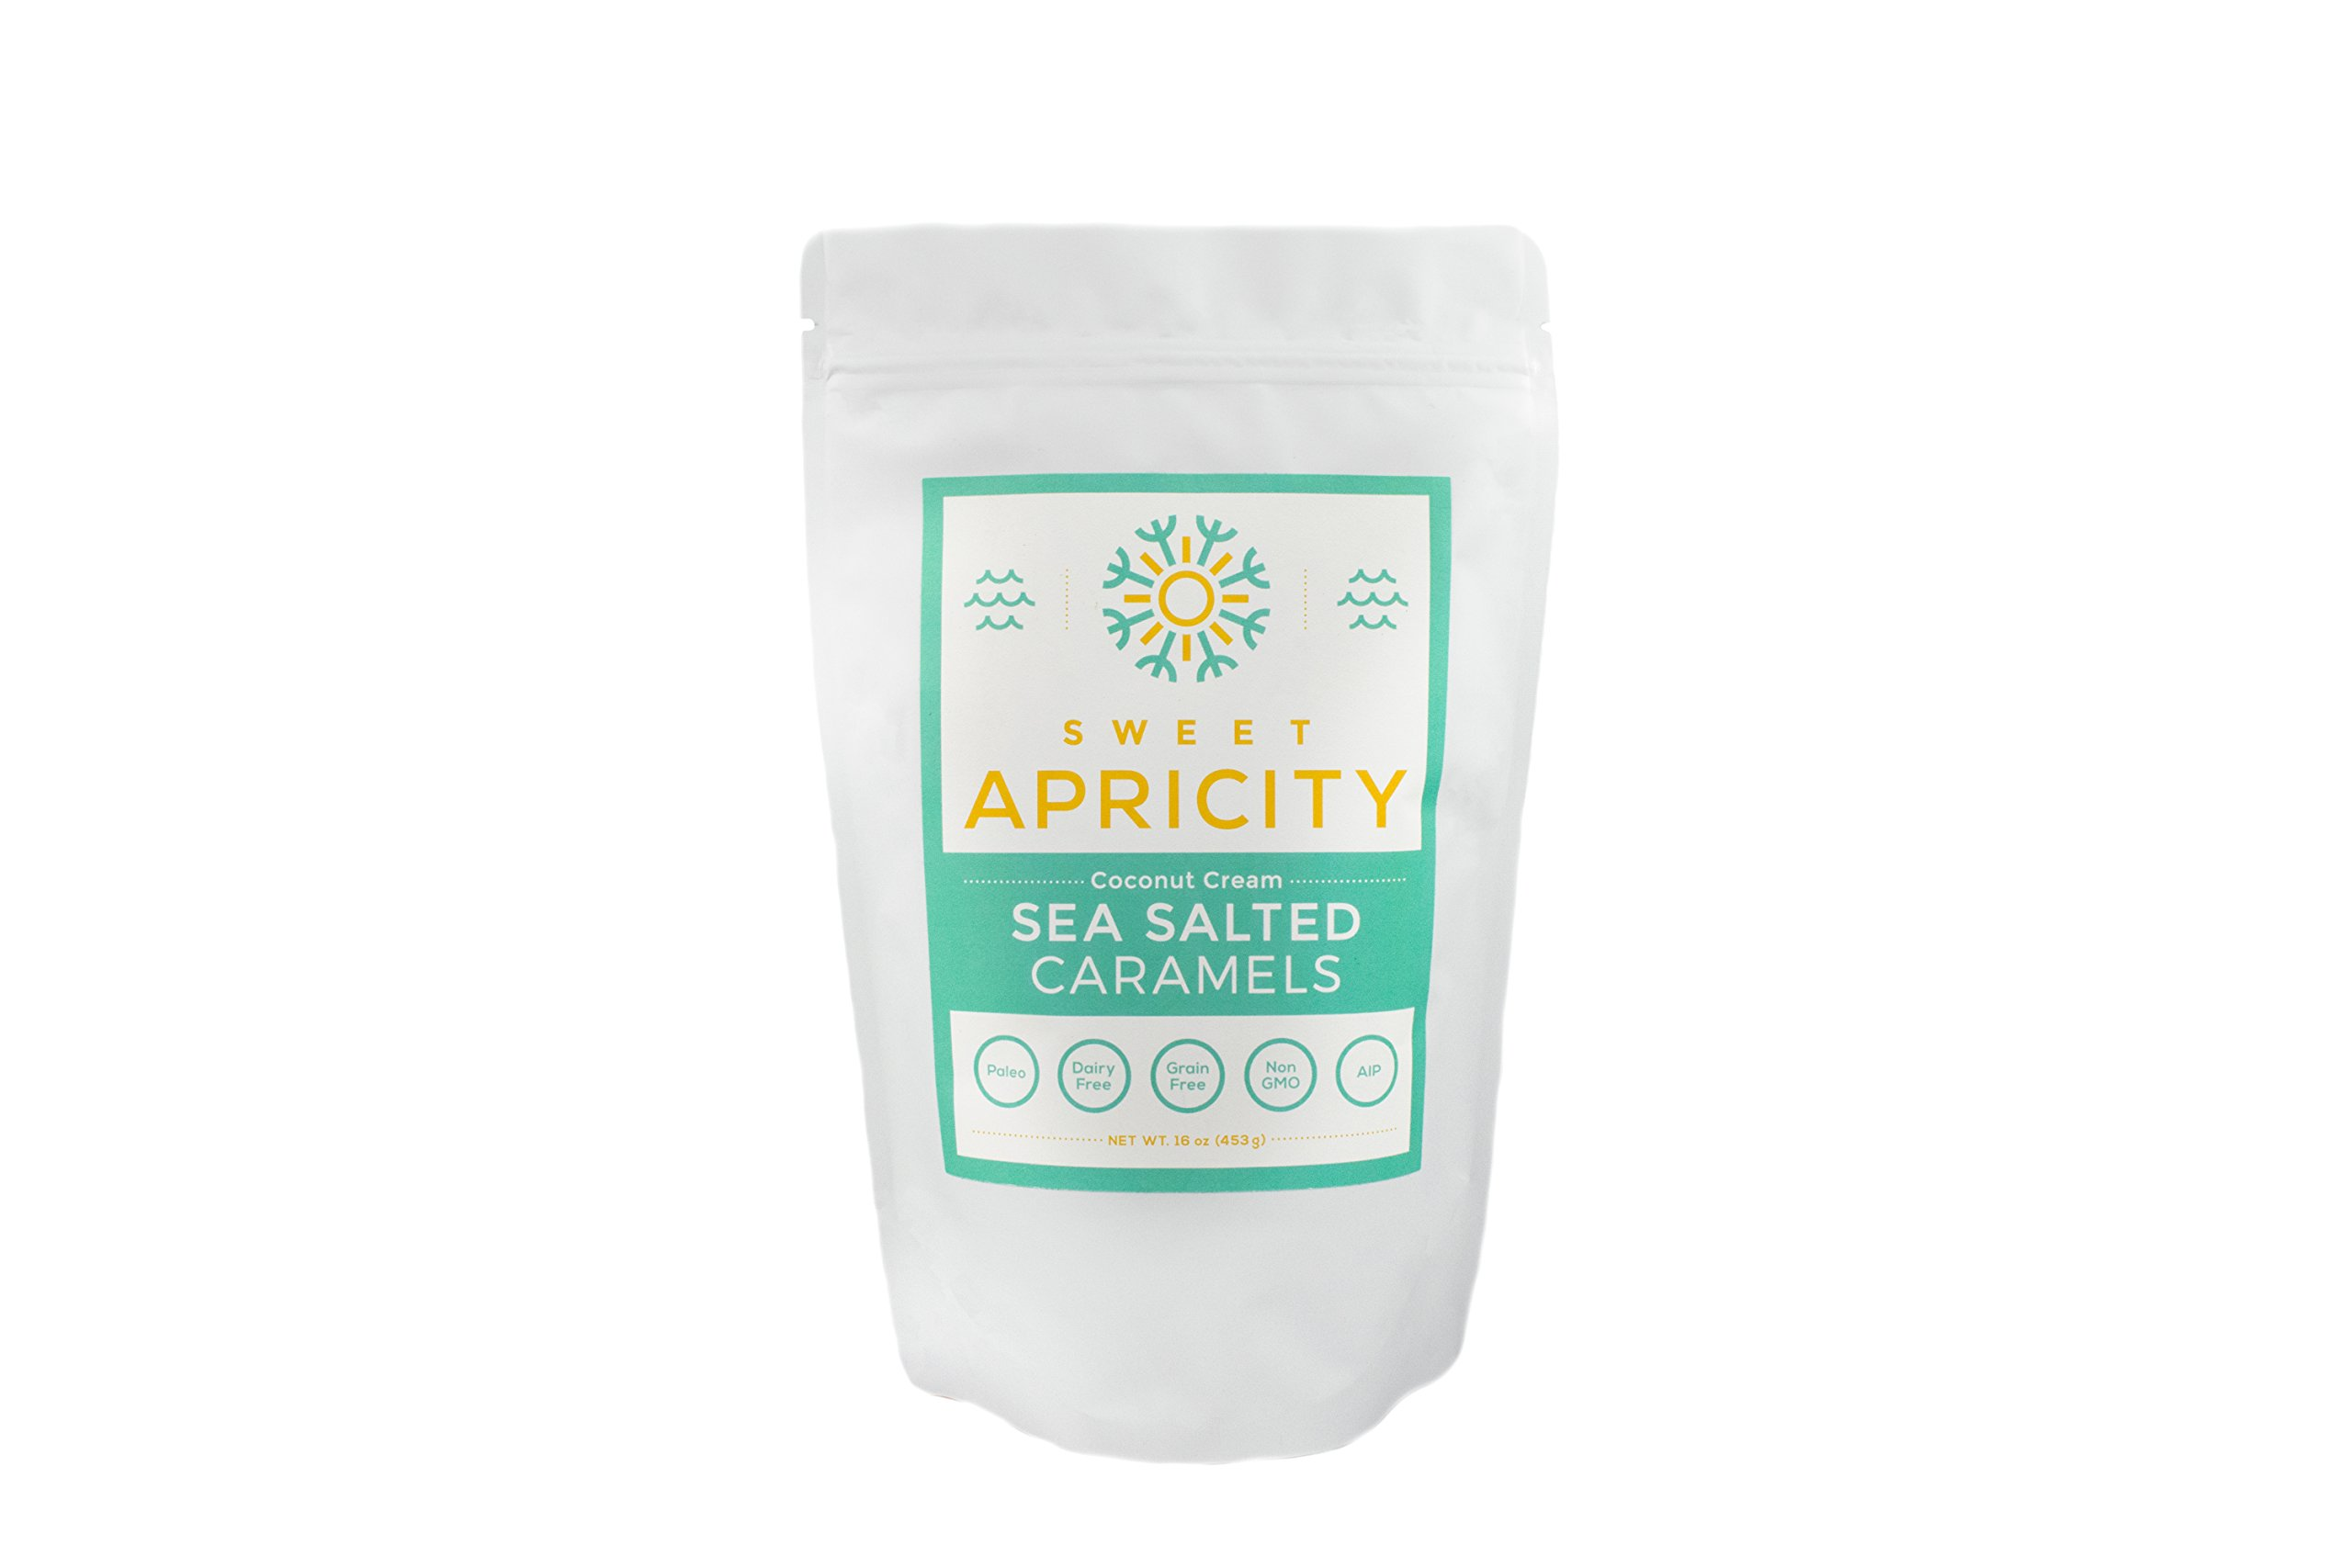 Coconut Cream Sea Salted Caramels, 1 lb (16 oz) by Sweet Apricity